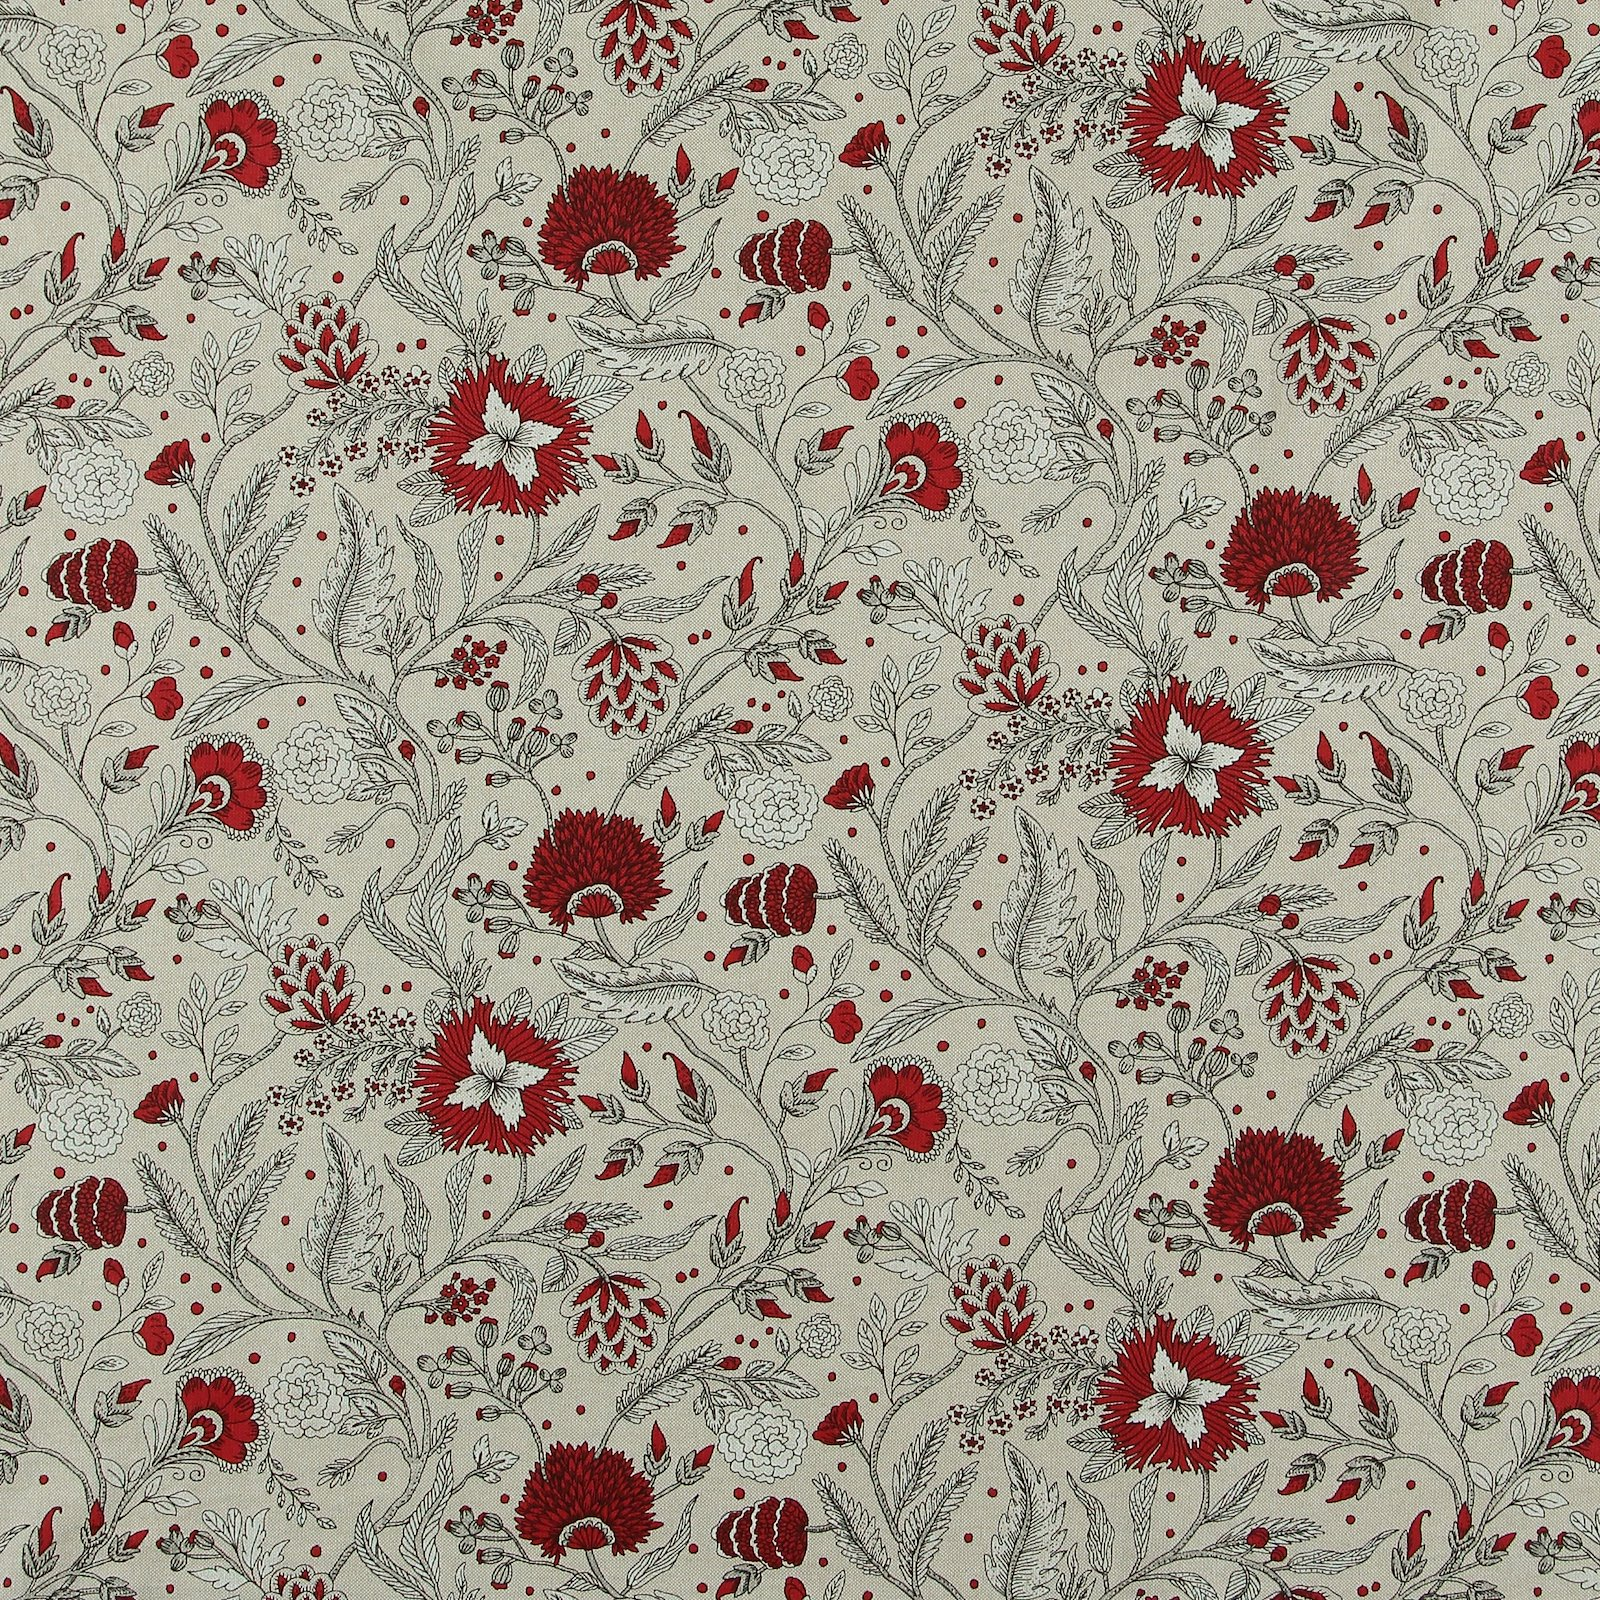 Linen look with red and white flowers 760299_pack_sp